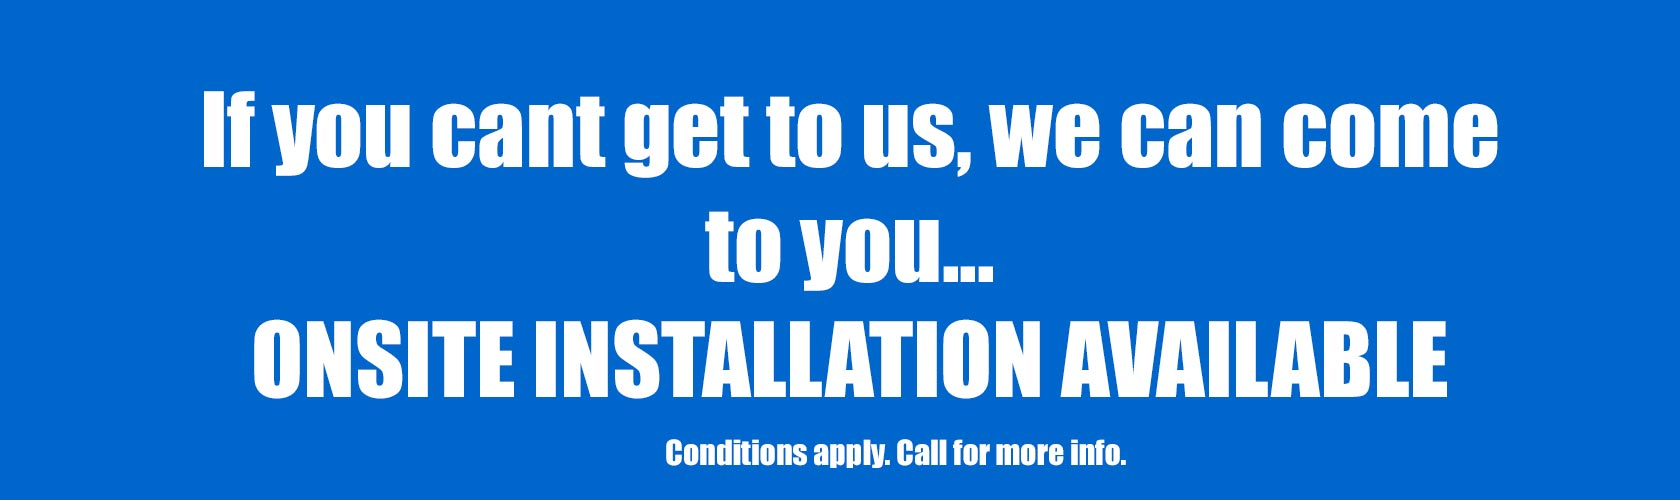 onsite fitting available call for more info